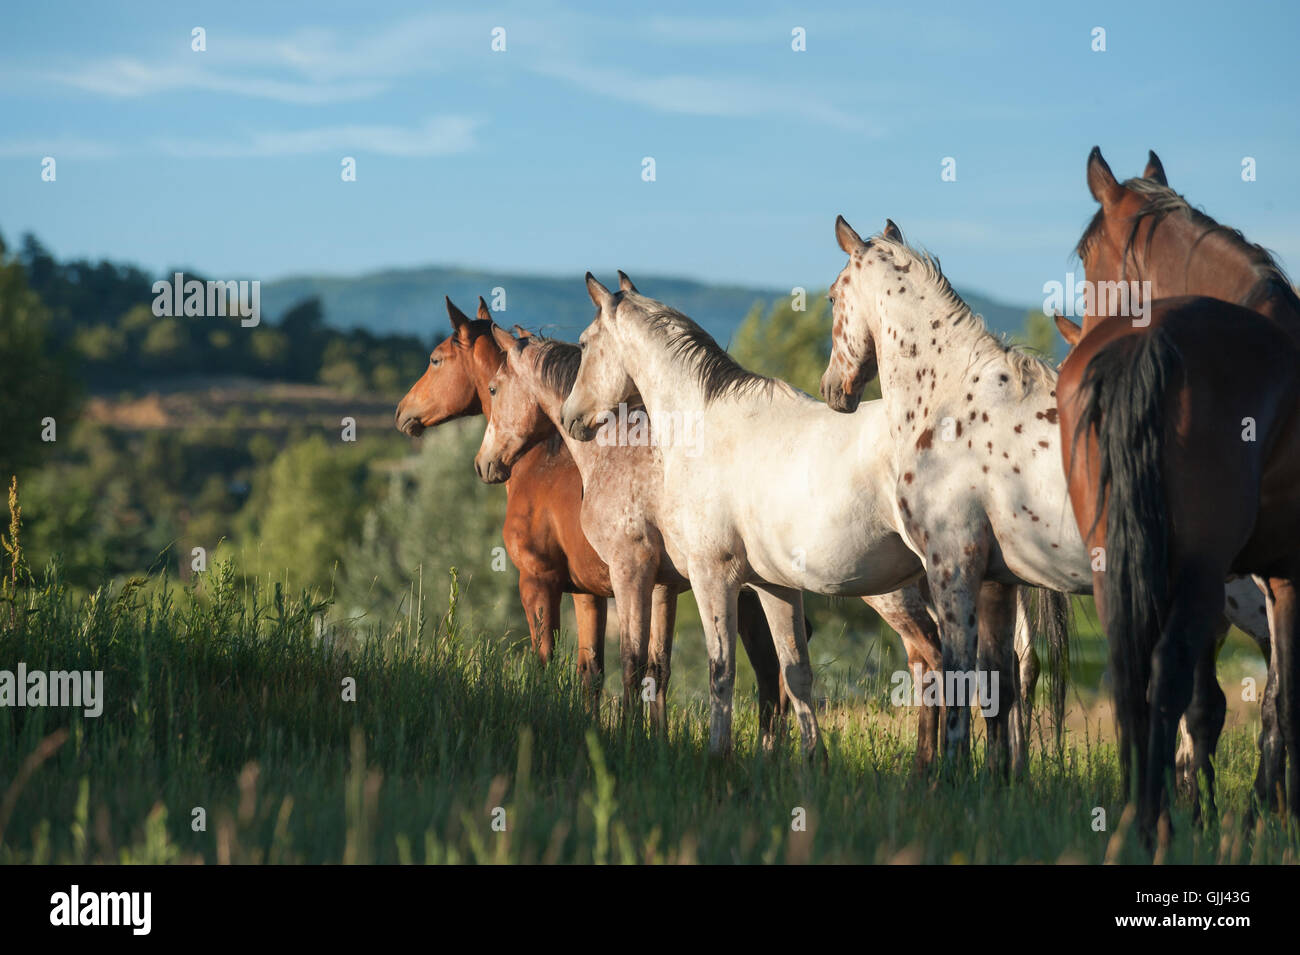 Tiger Horse herd stands alertly on tall grass hillside. The Tiger horse is a modern reconstruction of an ancient - Stock Image